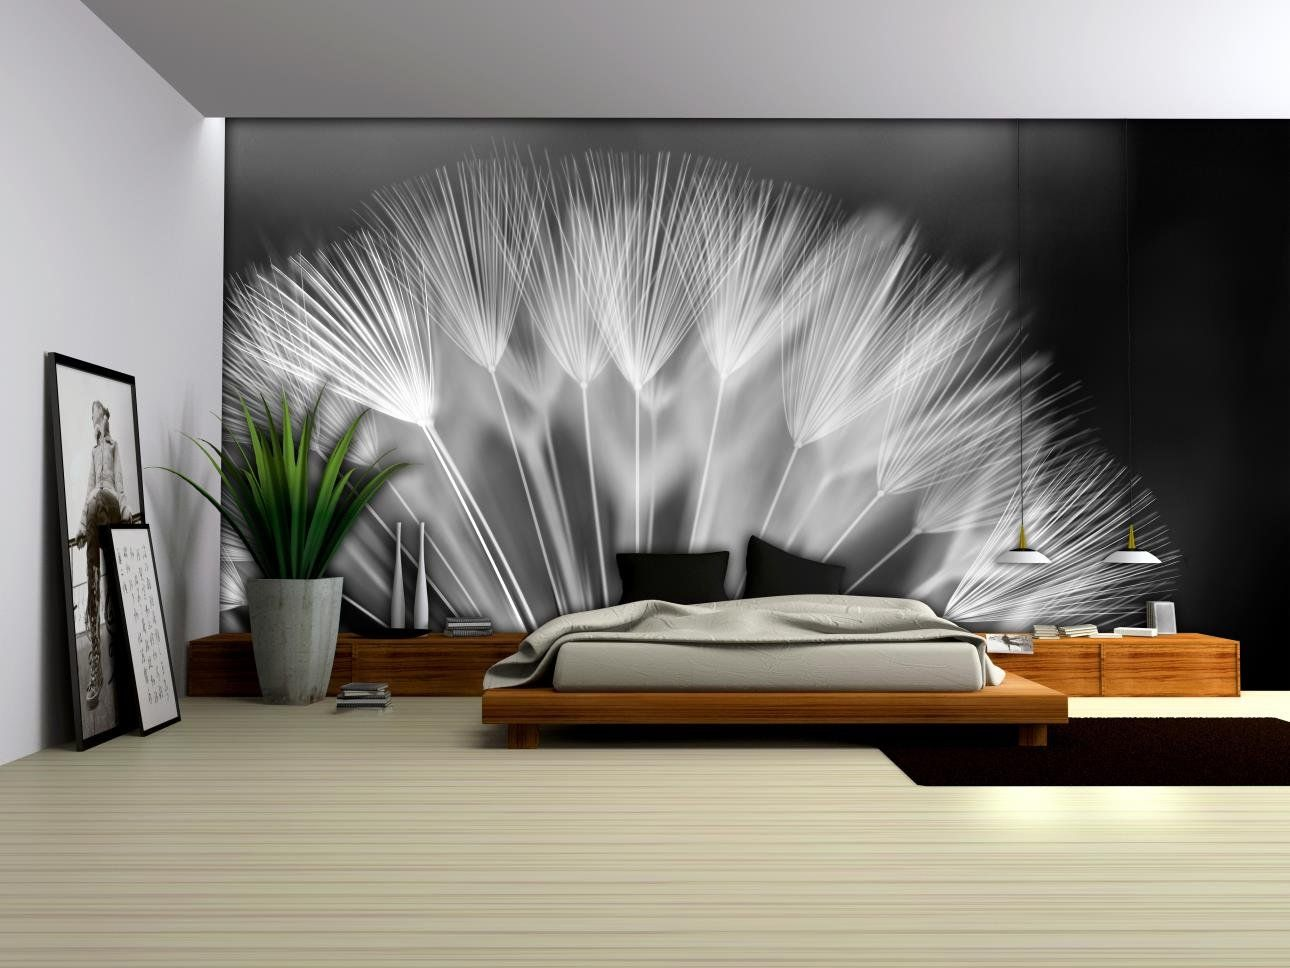 fototapete pusteblume poster wandbild bilder tapeten tapete foto 292 p4 baumarkt. Black Bedroom Furniture Sets. Home Design Ideas